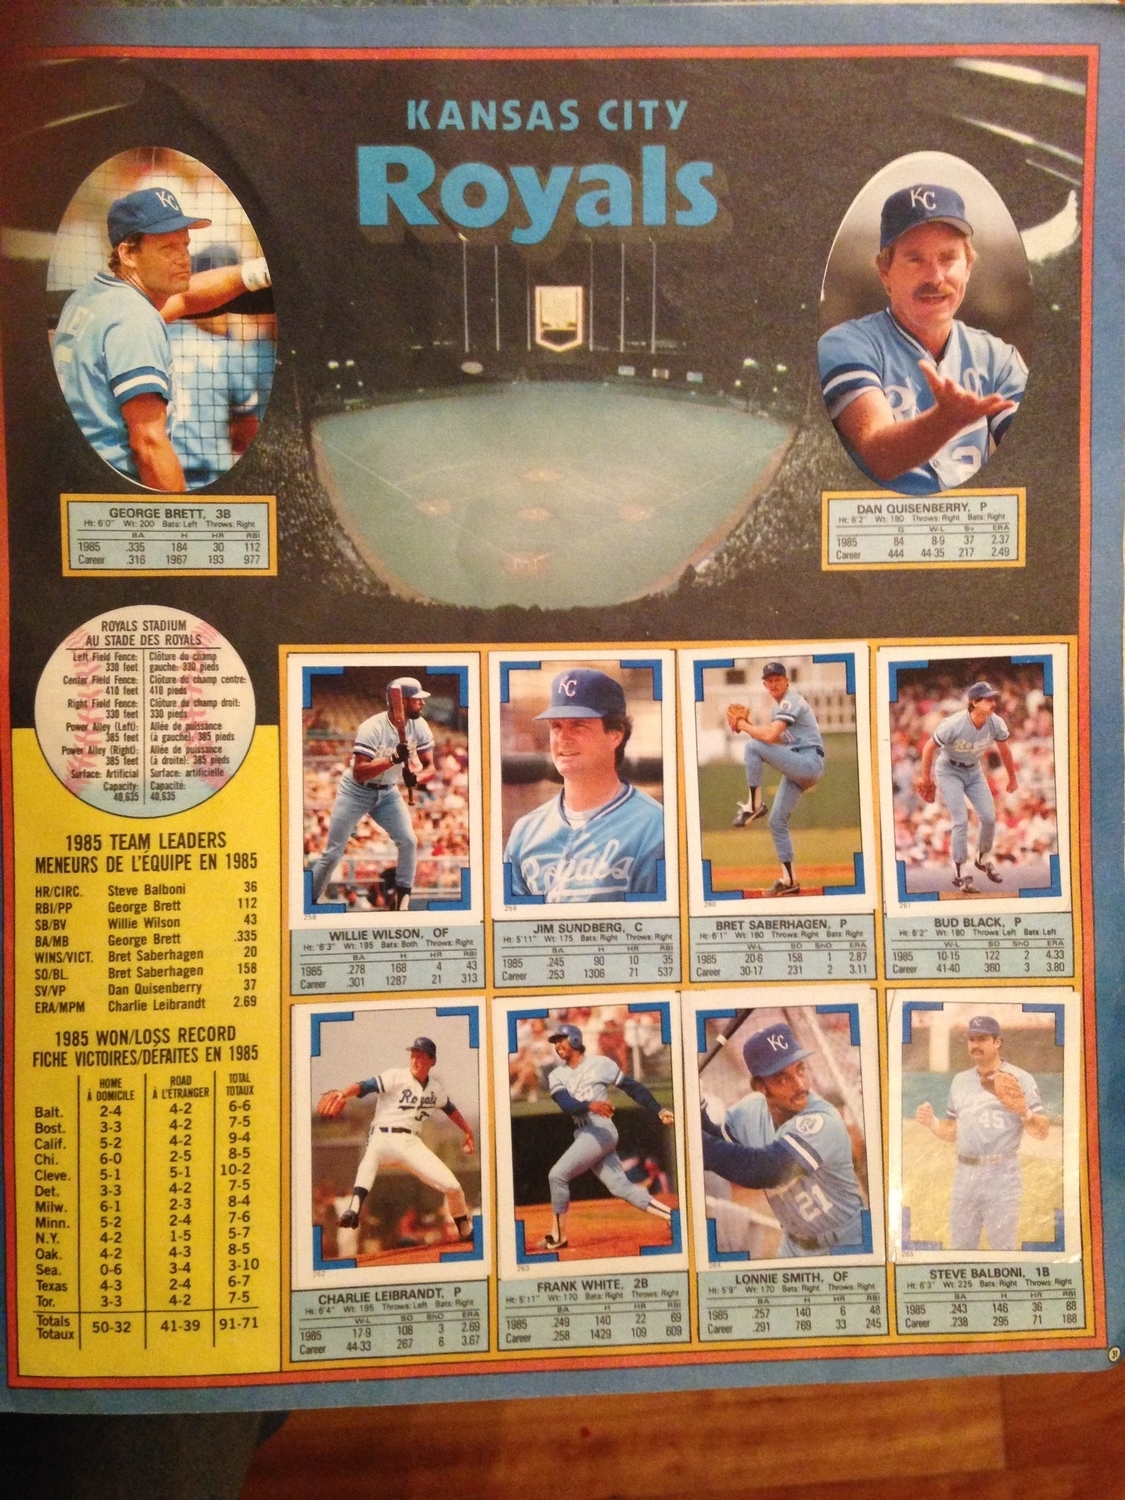 The 1985 Kansas City Royals (highlight: Dan Quisenberry not playing baseball)